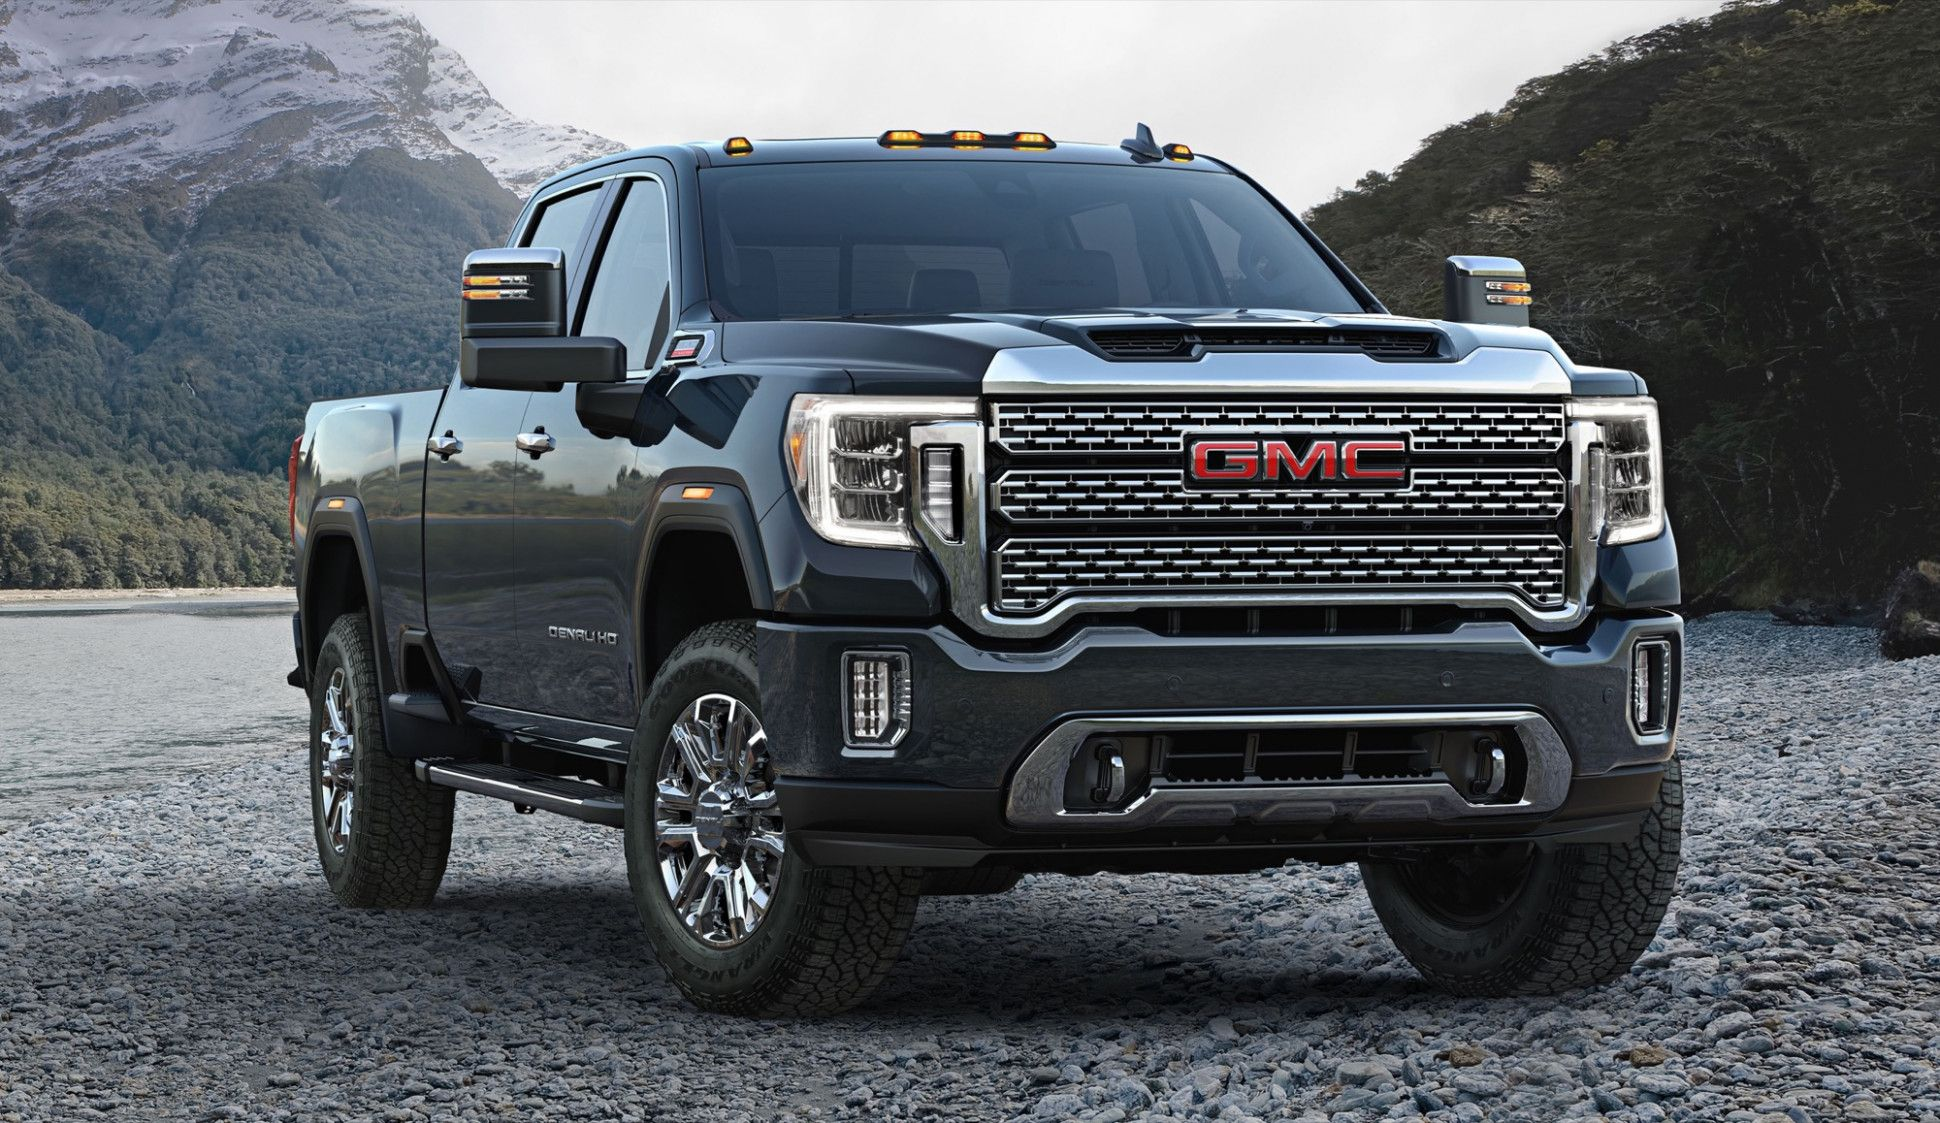 2020 Gmc Xt4 Exterior And Interior 2020 Car Reviews